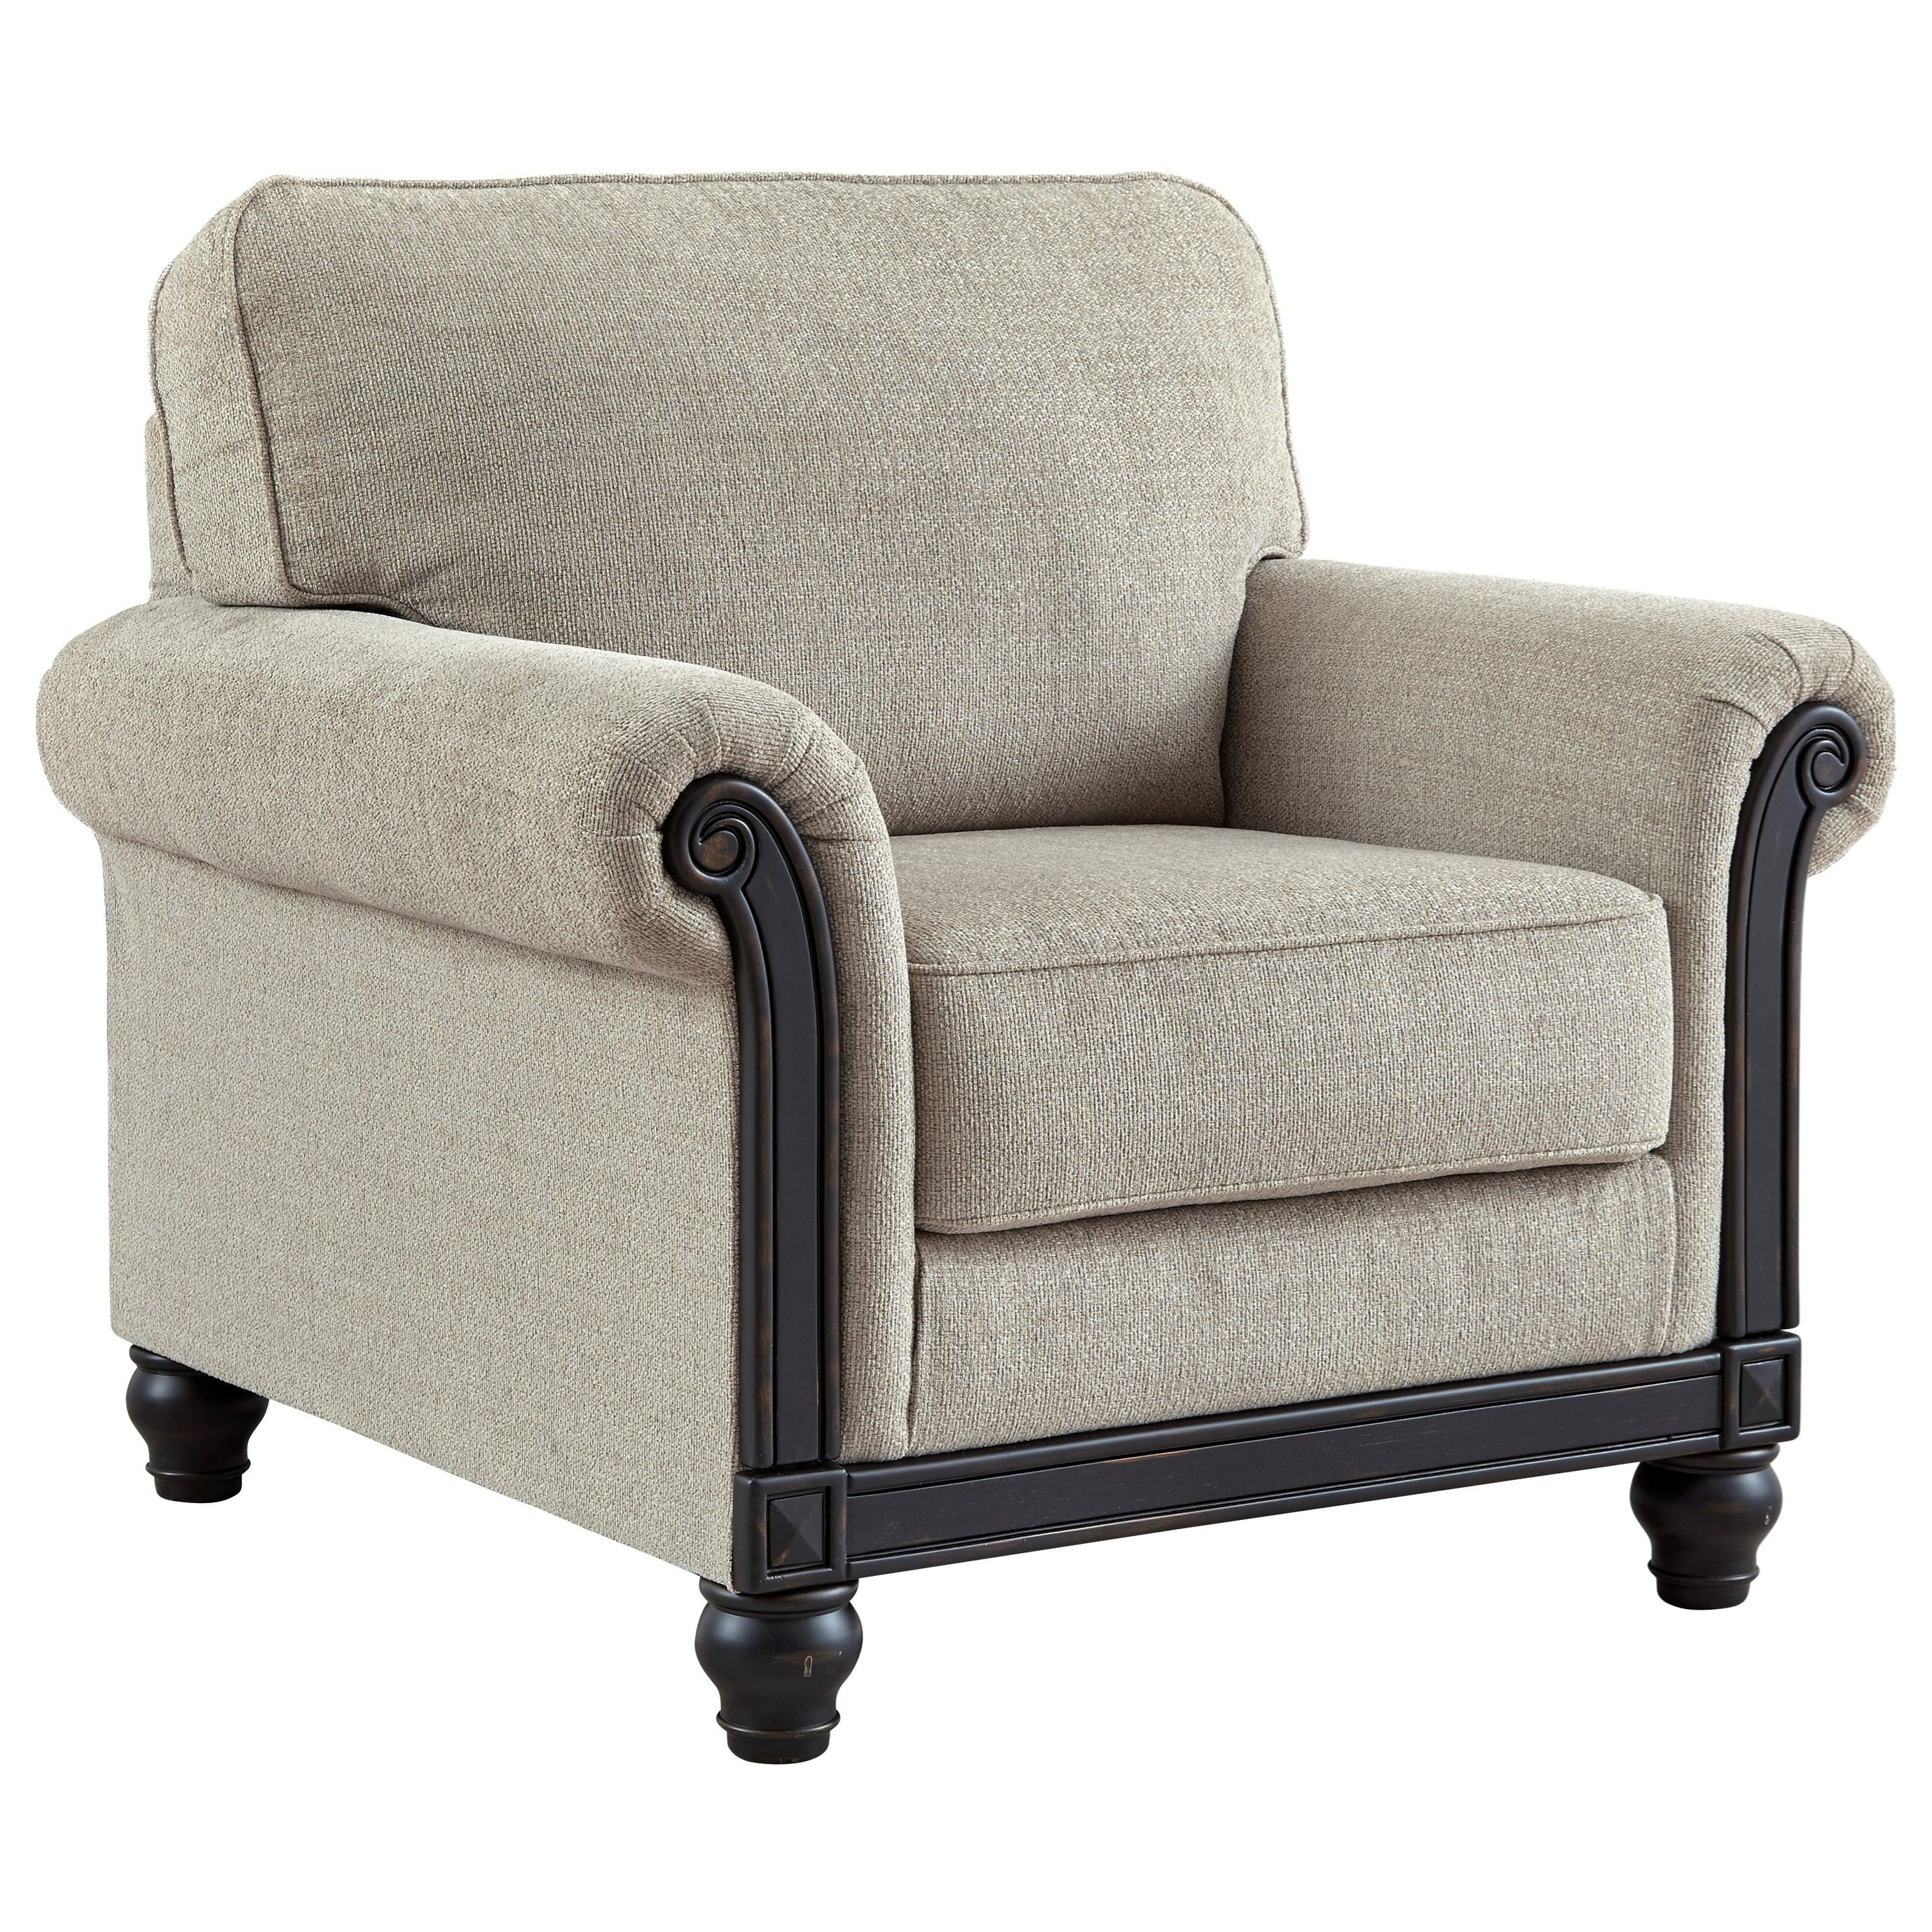 Benbrook Chair by Signature Design by Ashley at Zak's Warehouse Clearance Center